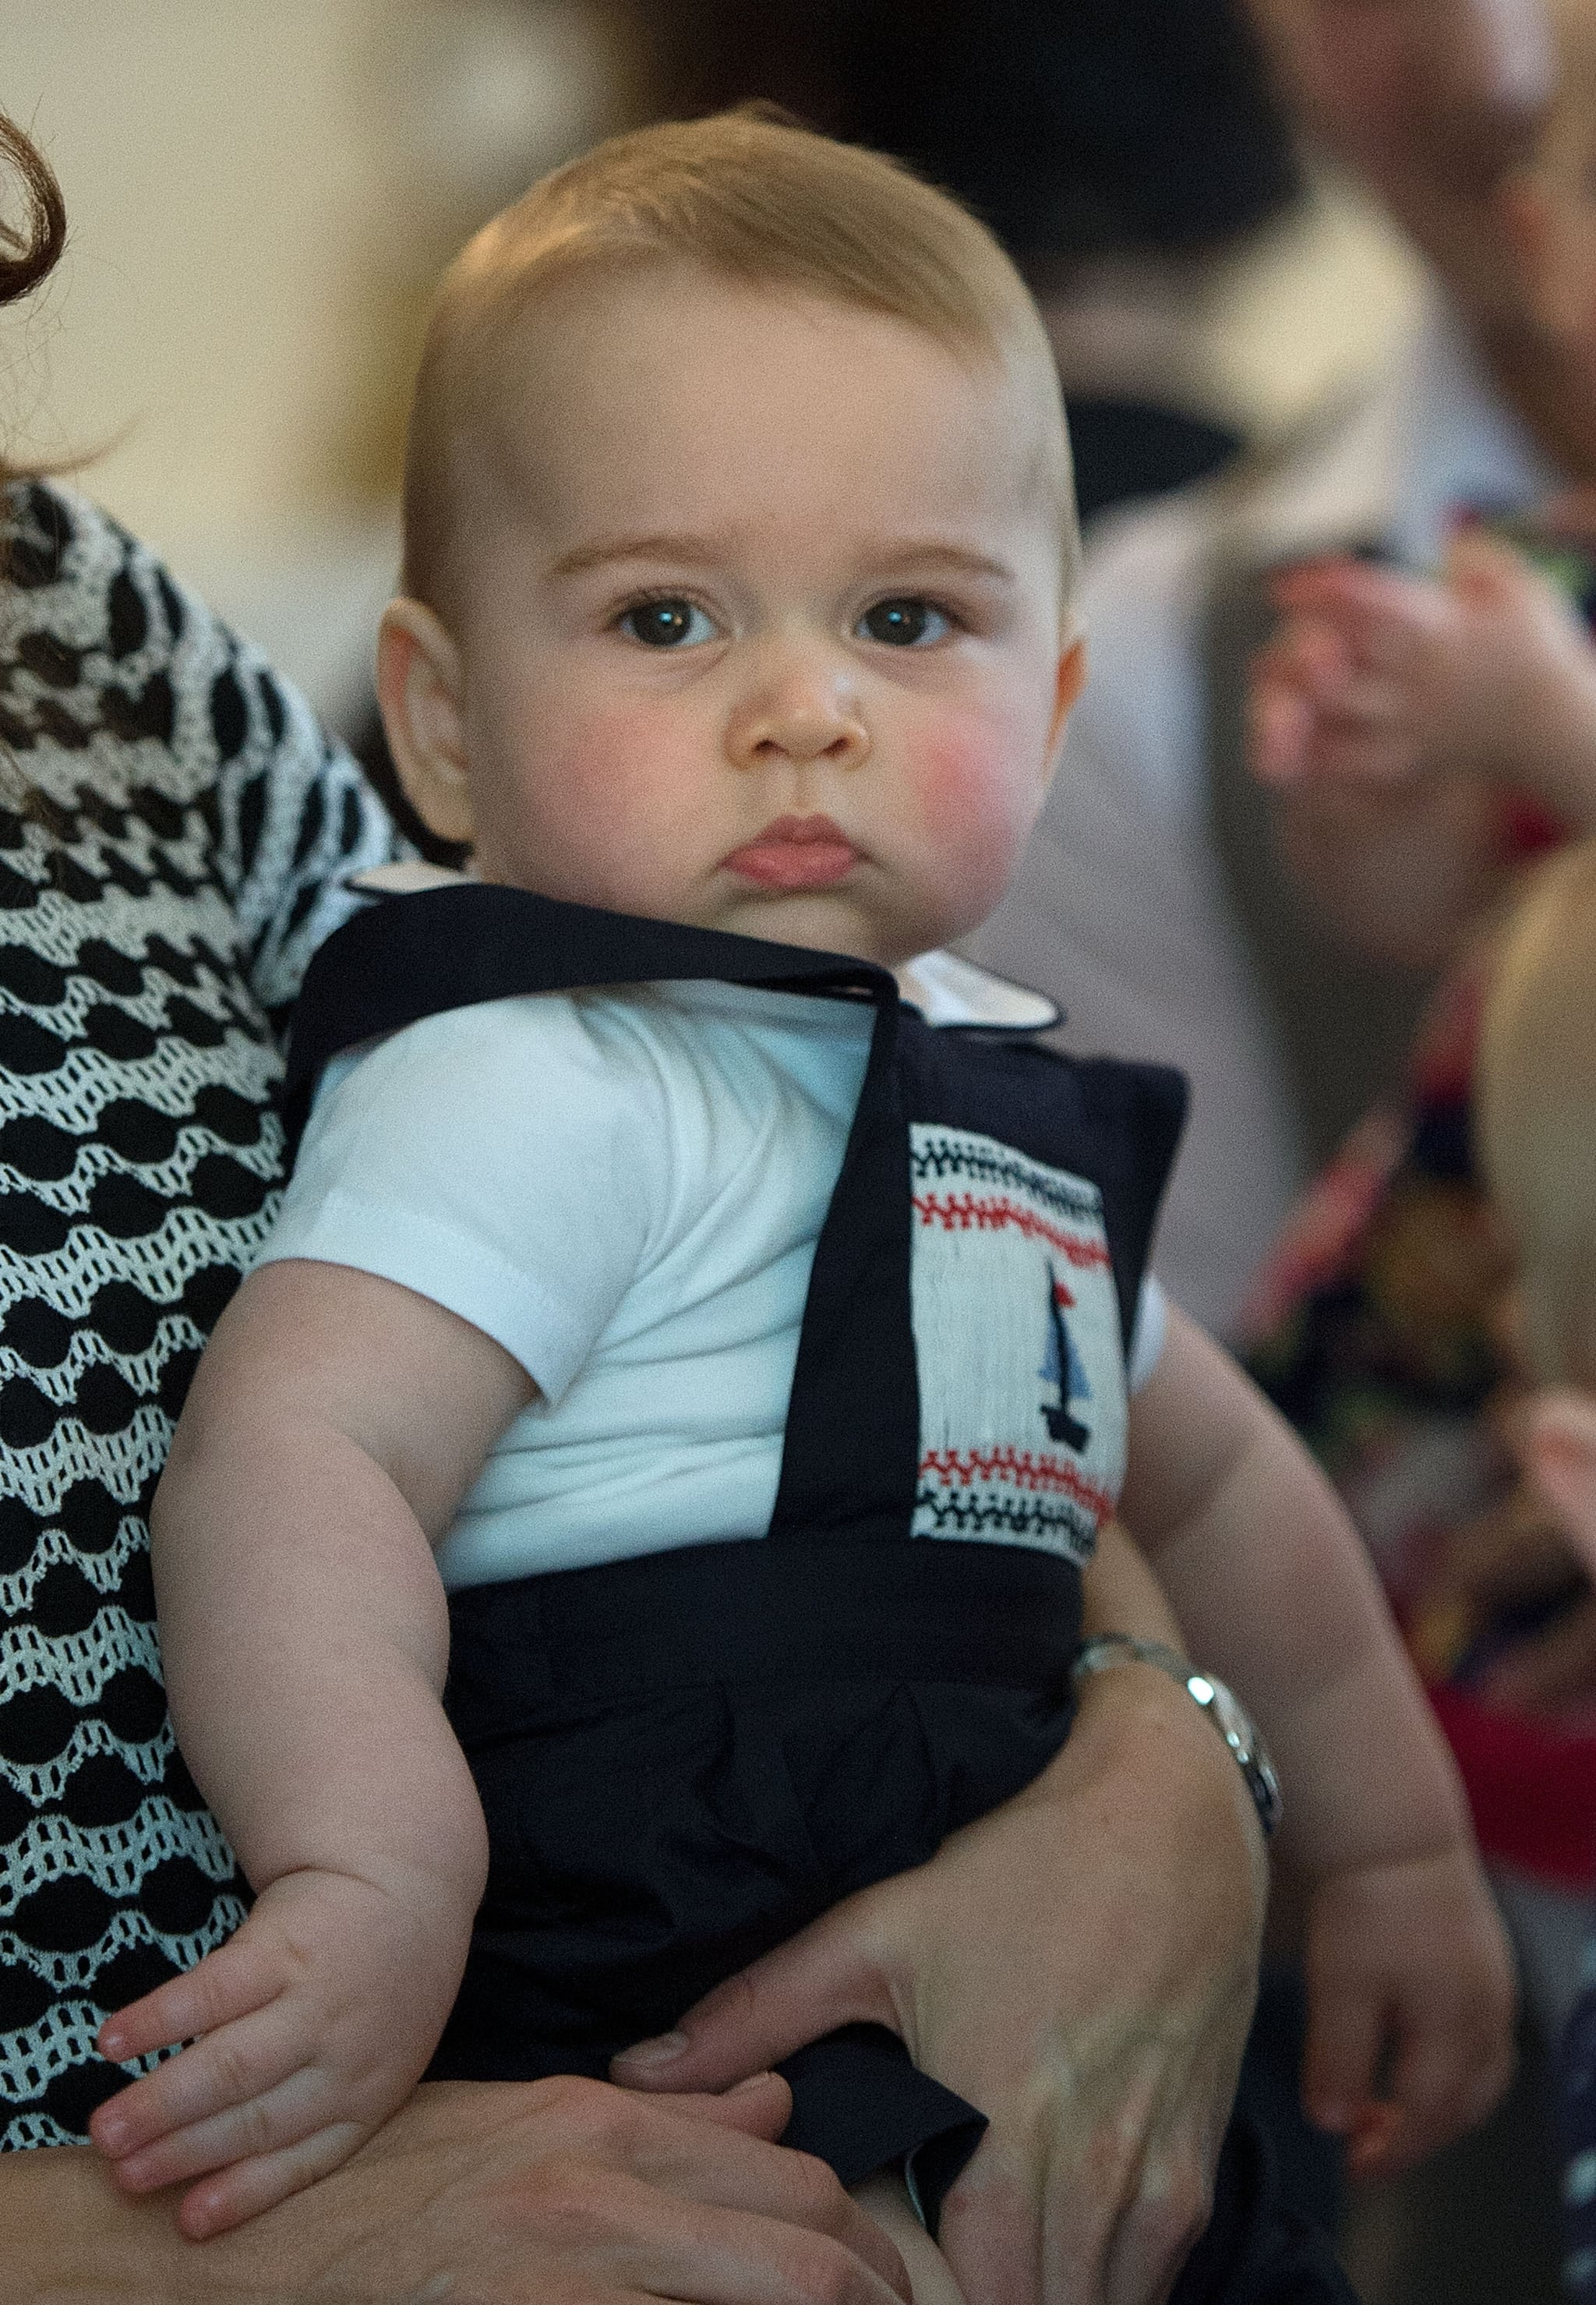 George's not-so-excited face at his first official royal event.